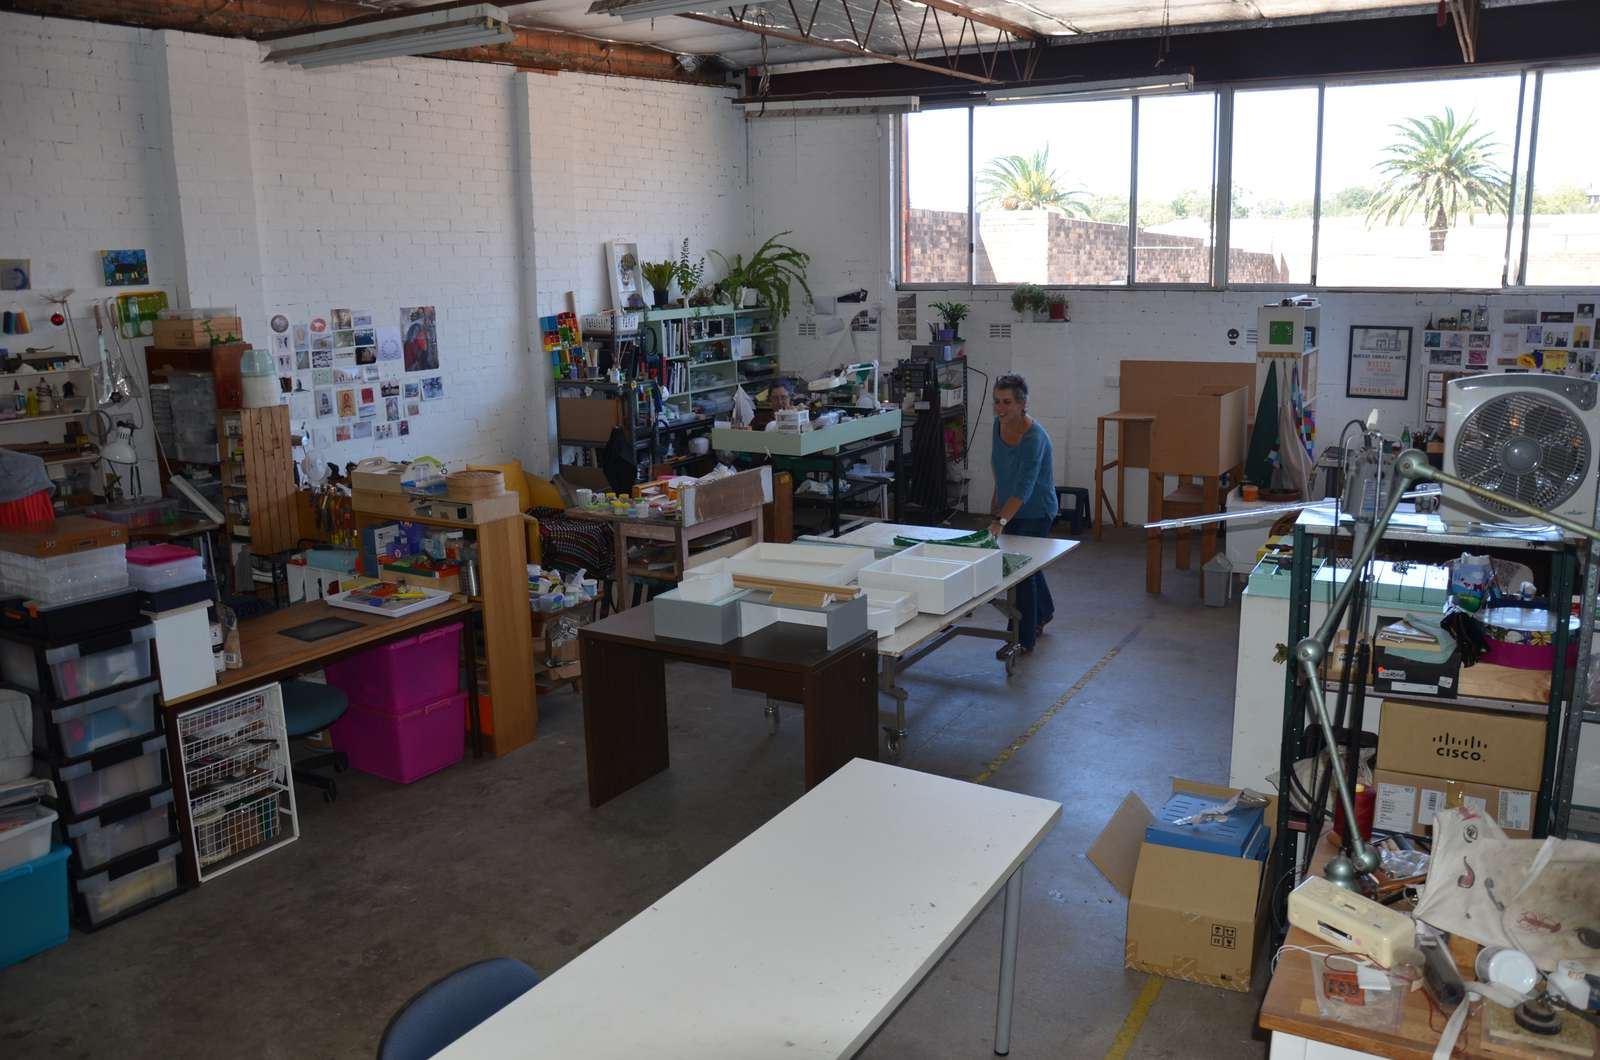 SquarePeg Studios in Sydney has workspaces available for use by aspiring or practicing jewellery designers.